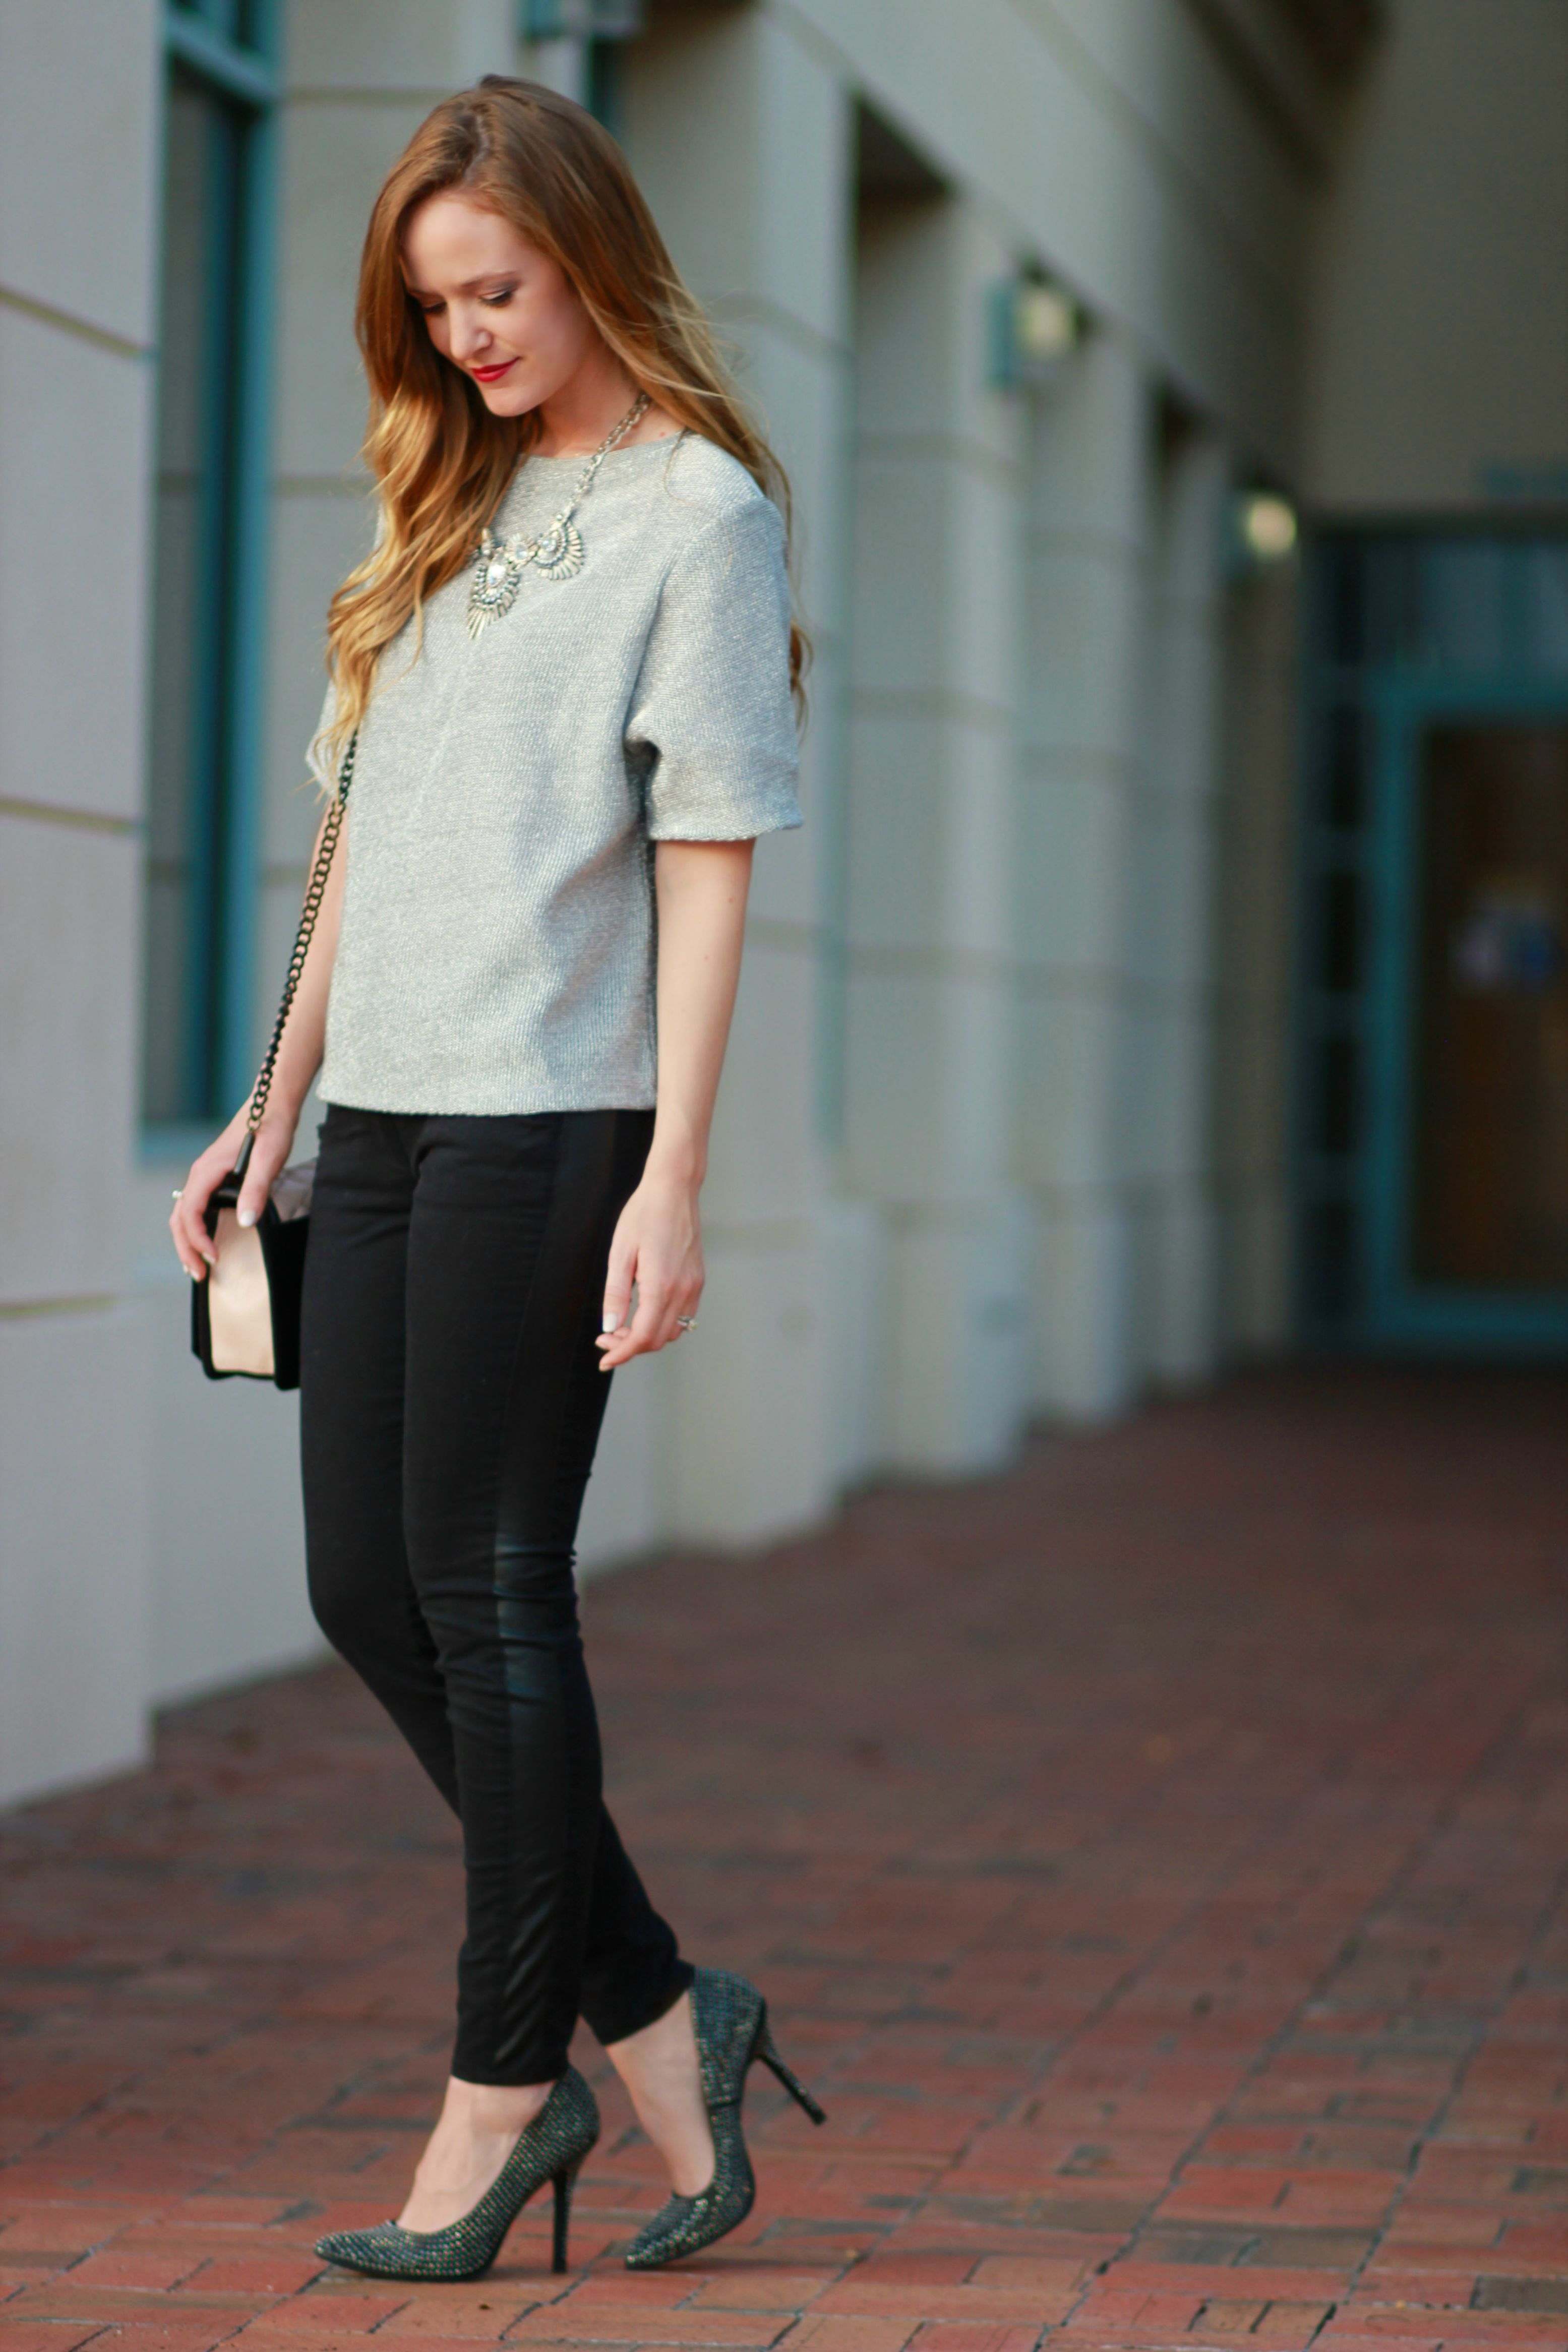 orlando, florida fashion blogger styles new years eve outfit inspiration with h&M top, loft leather pants, and rebecca minkoff crossbody